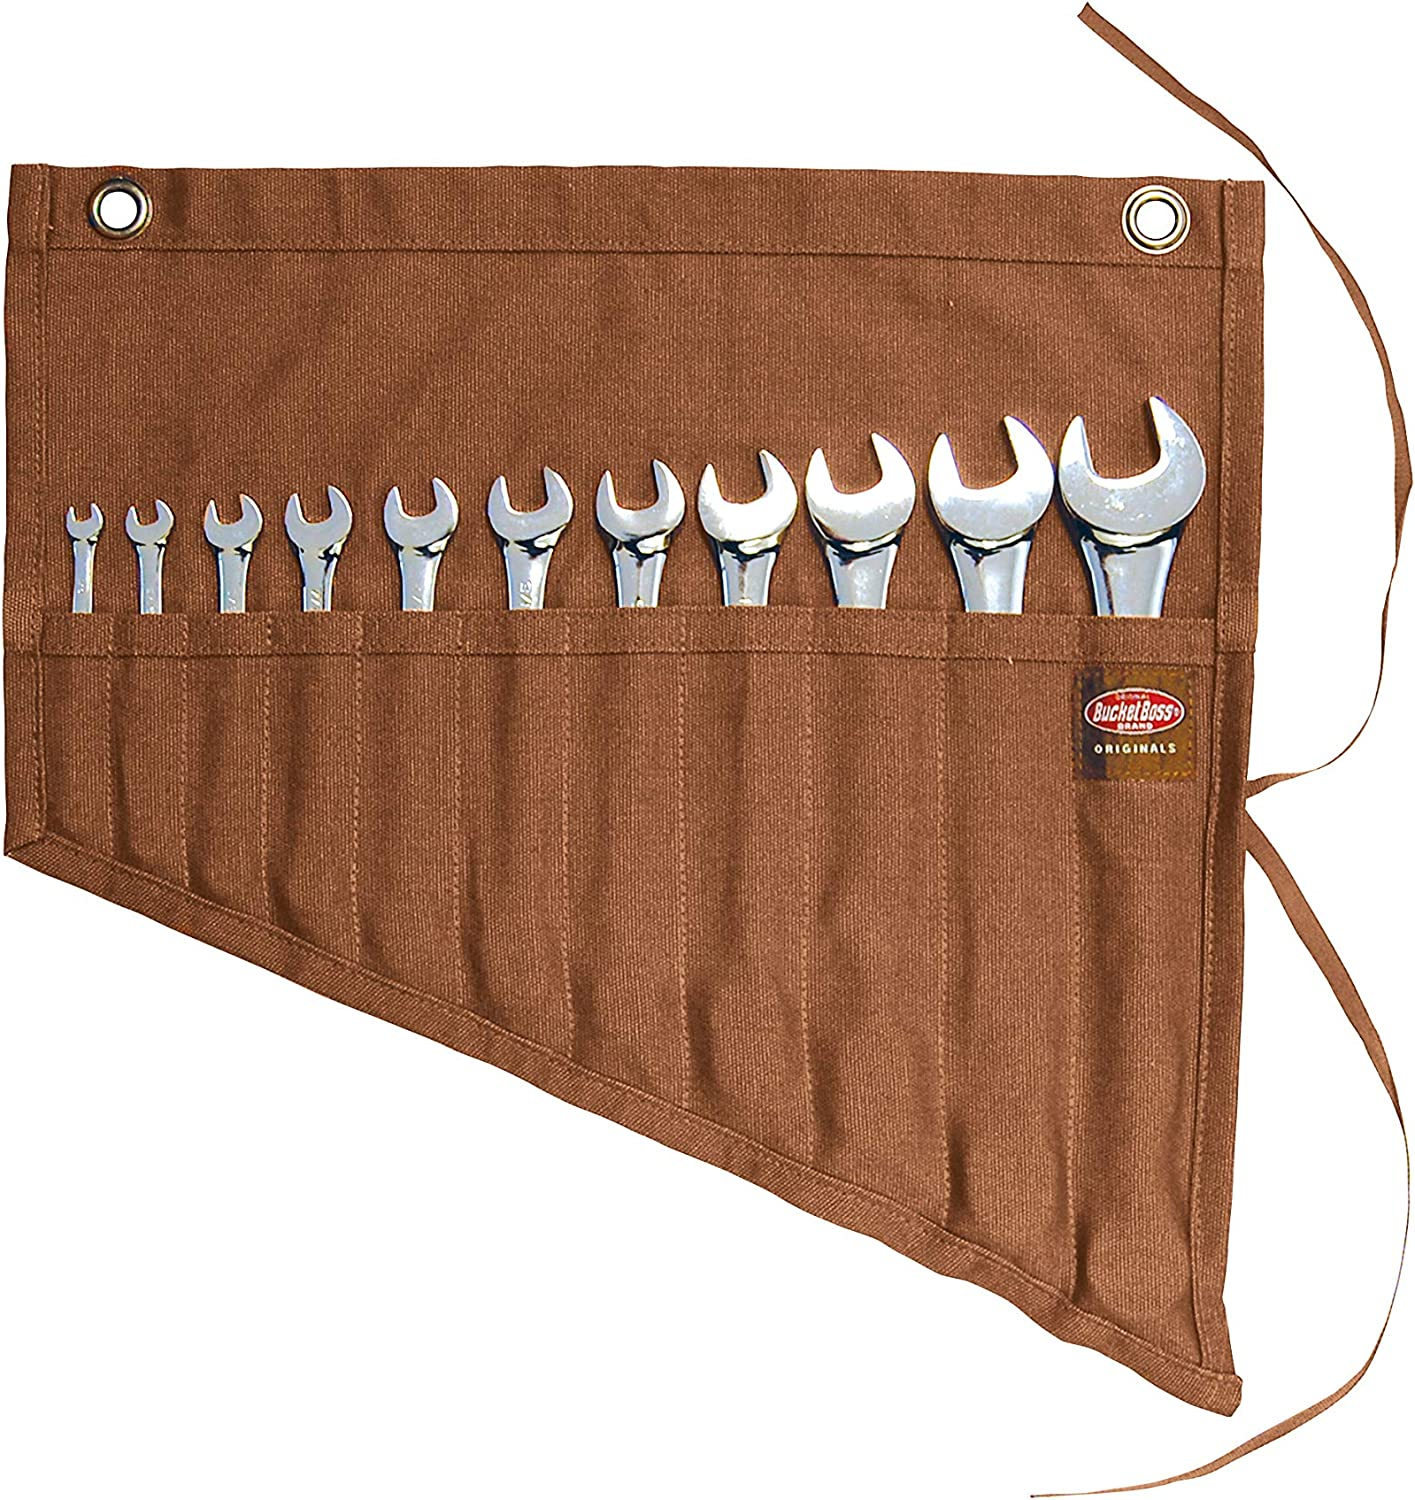 Bucket Max 72% OFF Boss - Wrench Roll Tool Outlet sale feature 70003 Original Bags Series